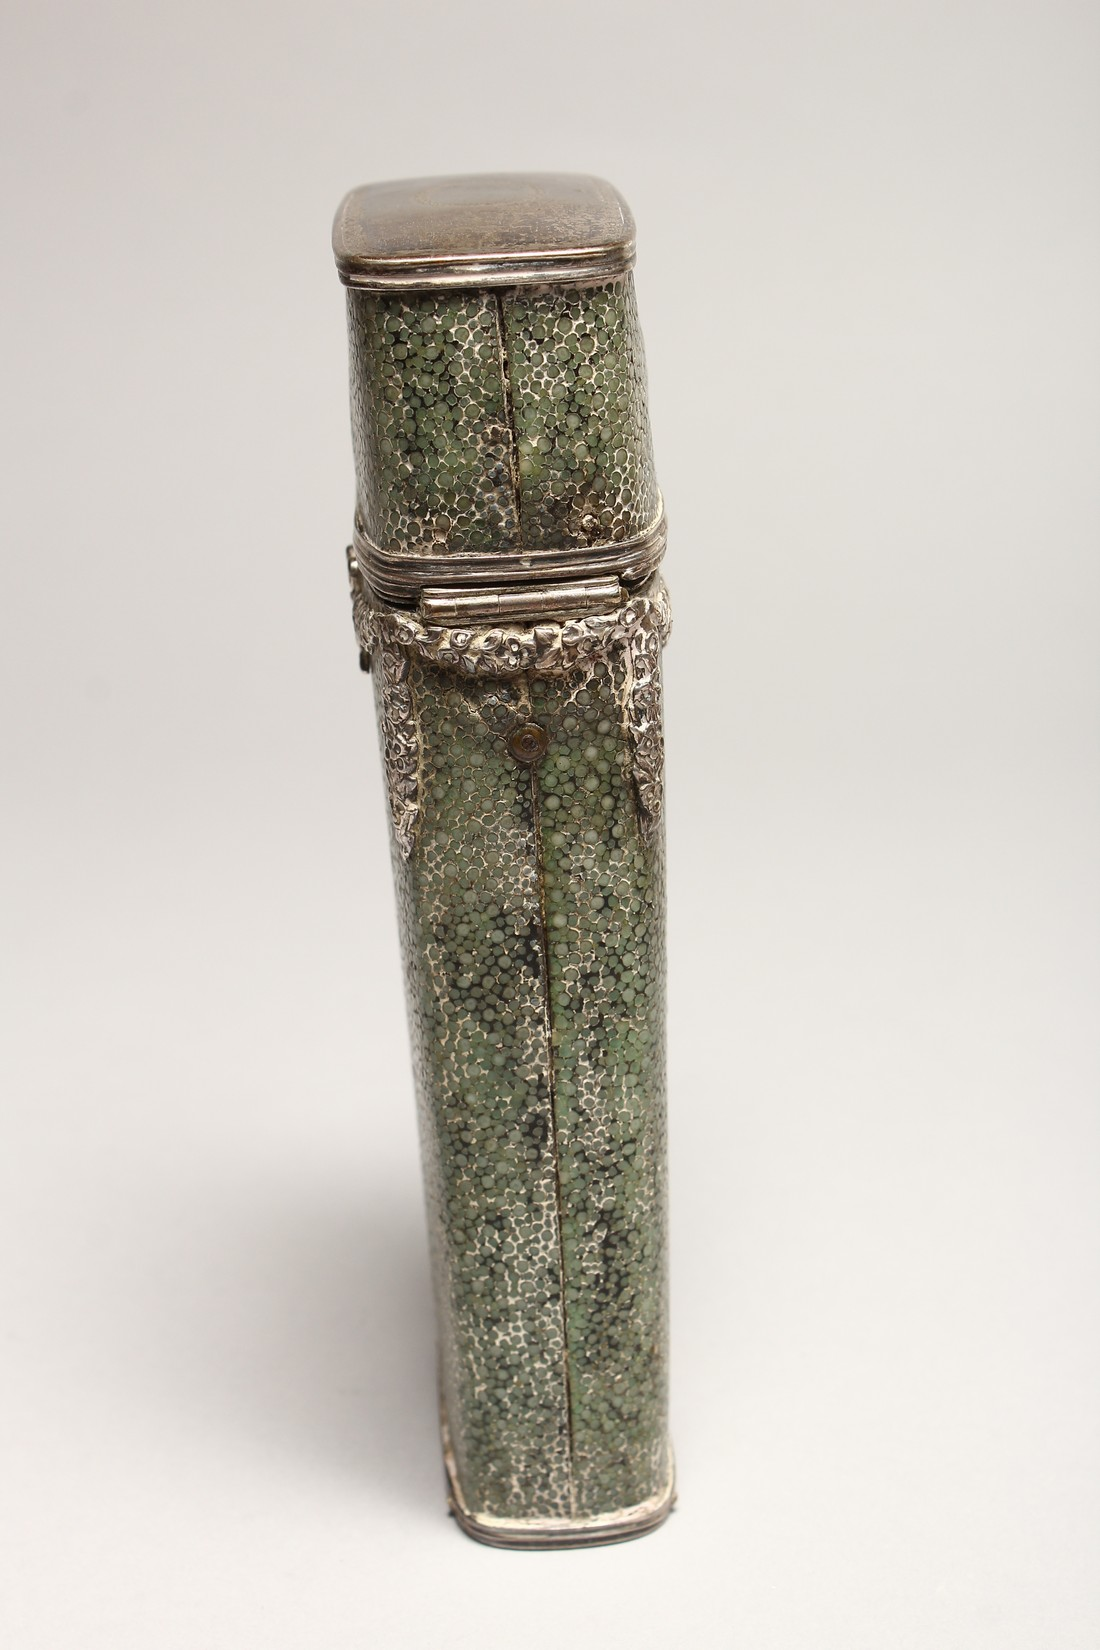 A GEORGIAN WHISKY FLASK in a shagreen case, with silver garlands 6.5ins long (some damage). - Image 4 of 8